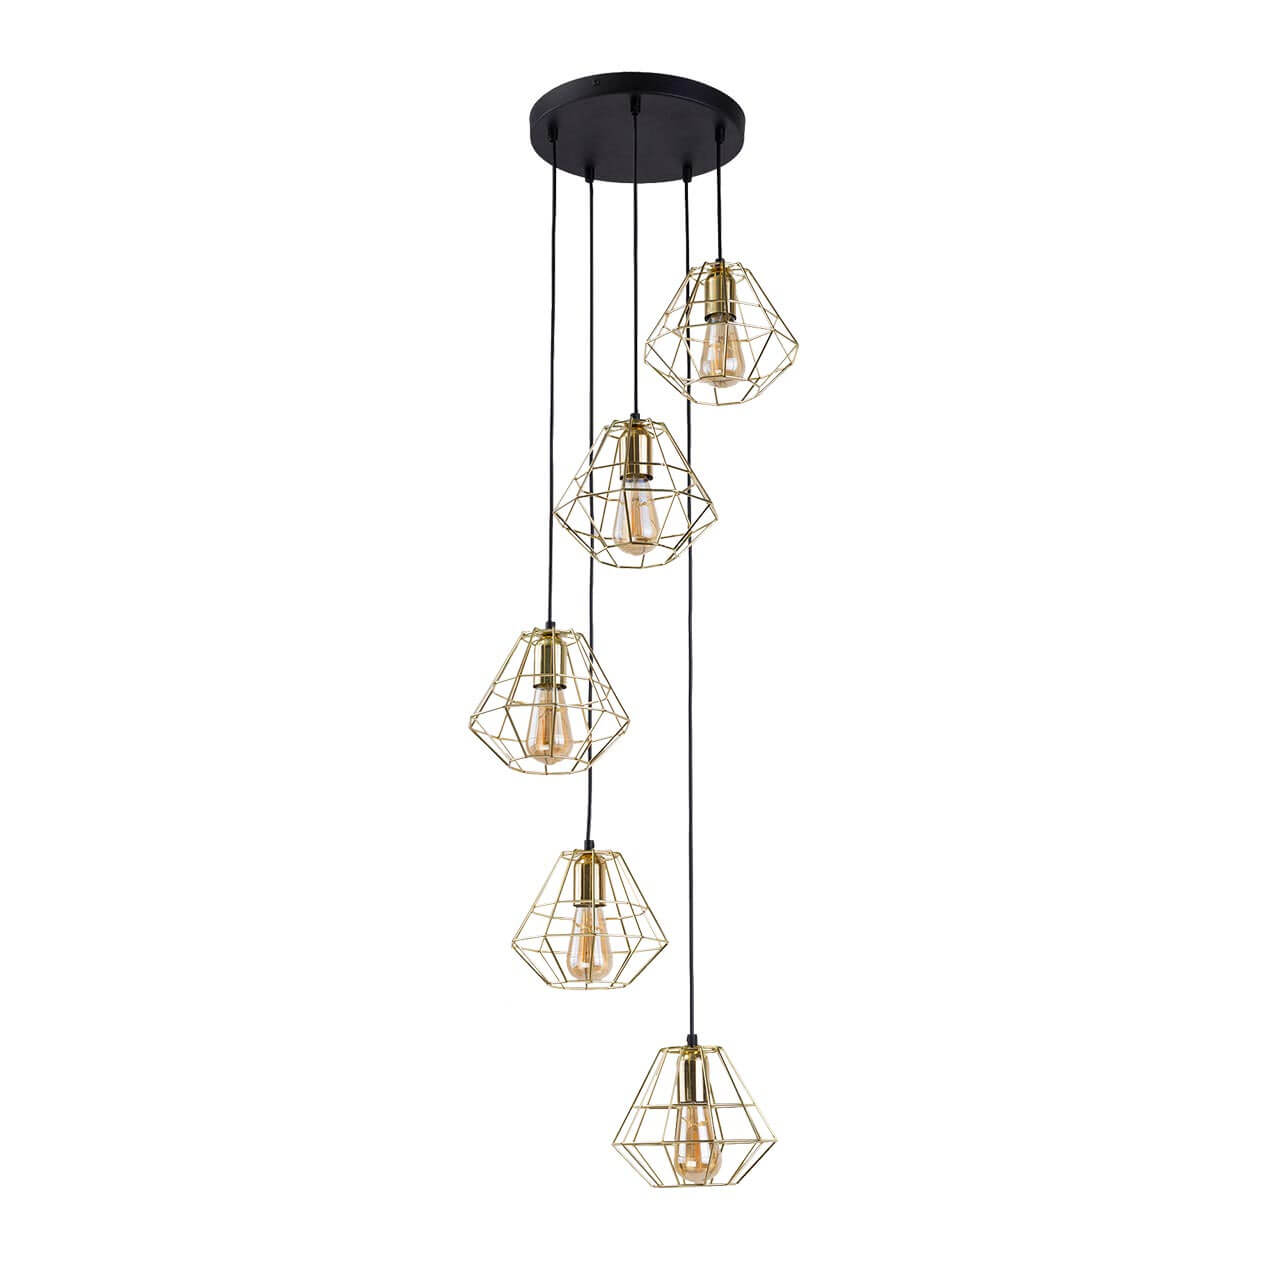 Светильник TK Lighting 2576 Diamond Gold Diamond Gold светильник подвесной tk lighting diamond 696 diamond 1